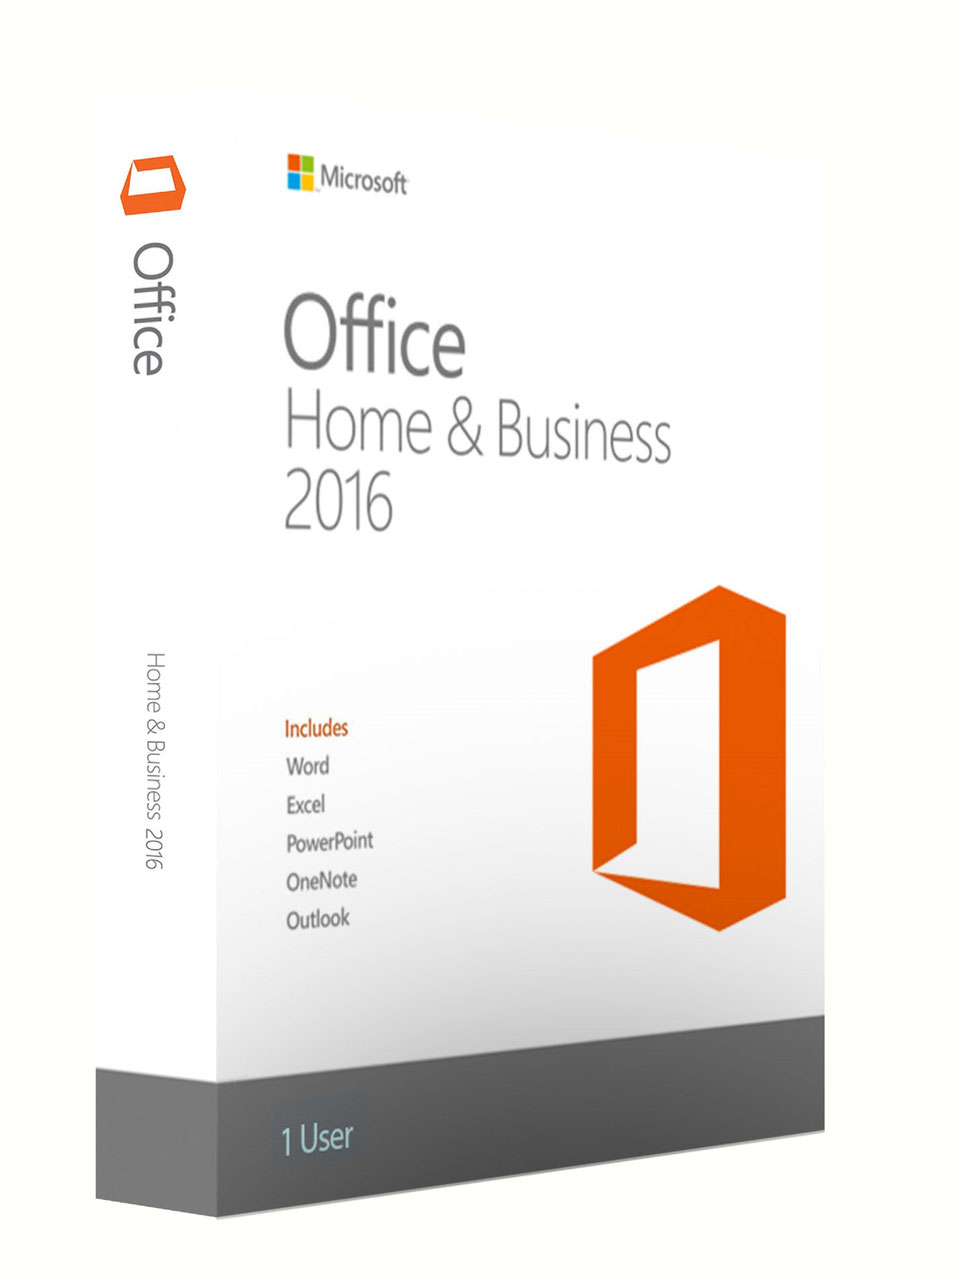 Microsoft office home and business 2016 microsoft office - Windows office home and business 2013 ...